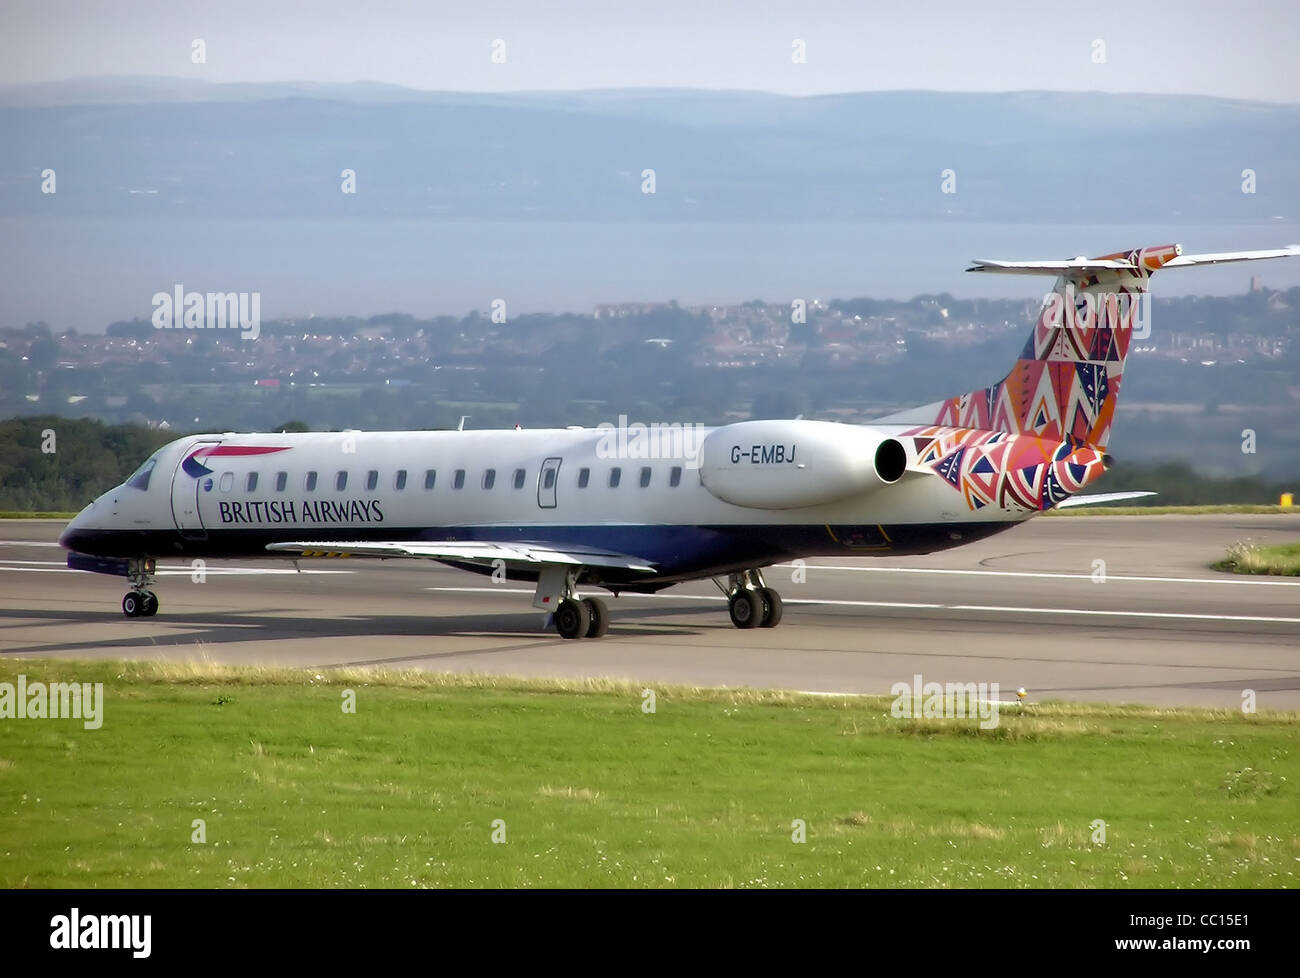 British Airways Embraer ERJ 145 (G-EMBJ) taxis at Bristol International Airport, England. - Stock Image